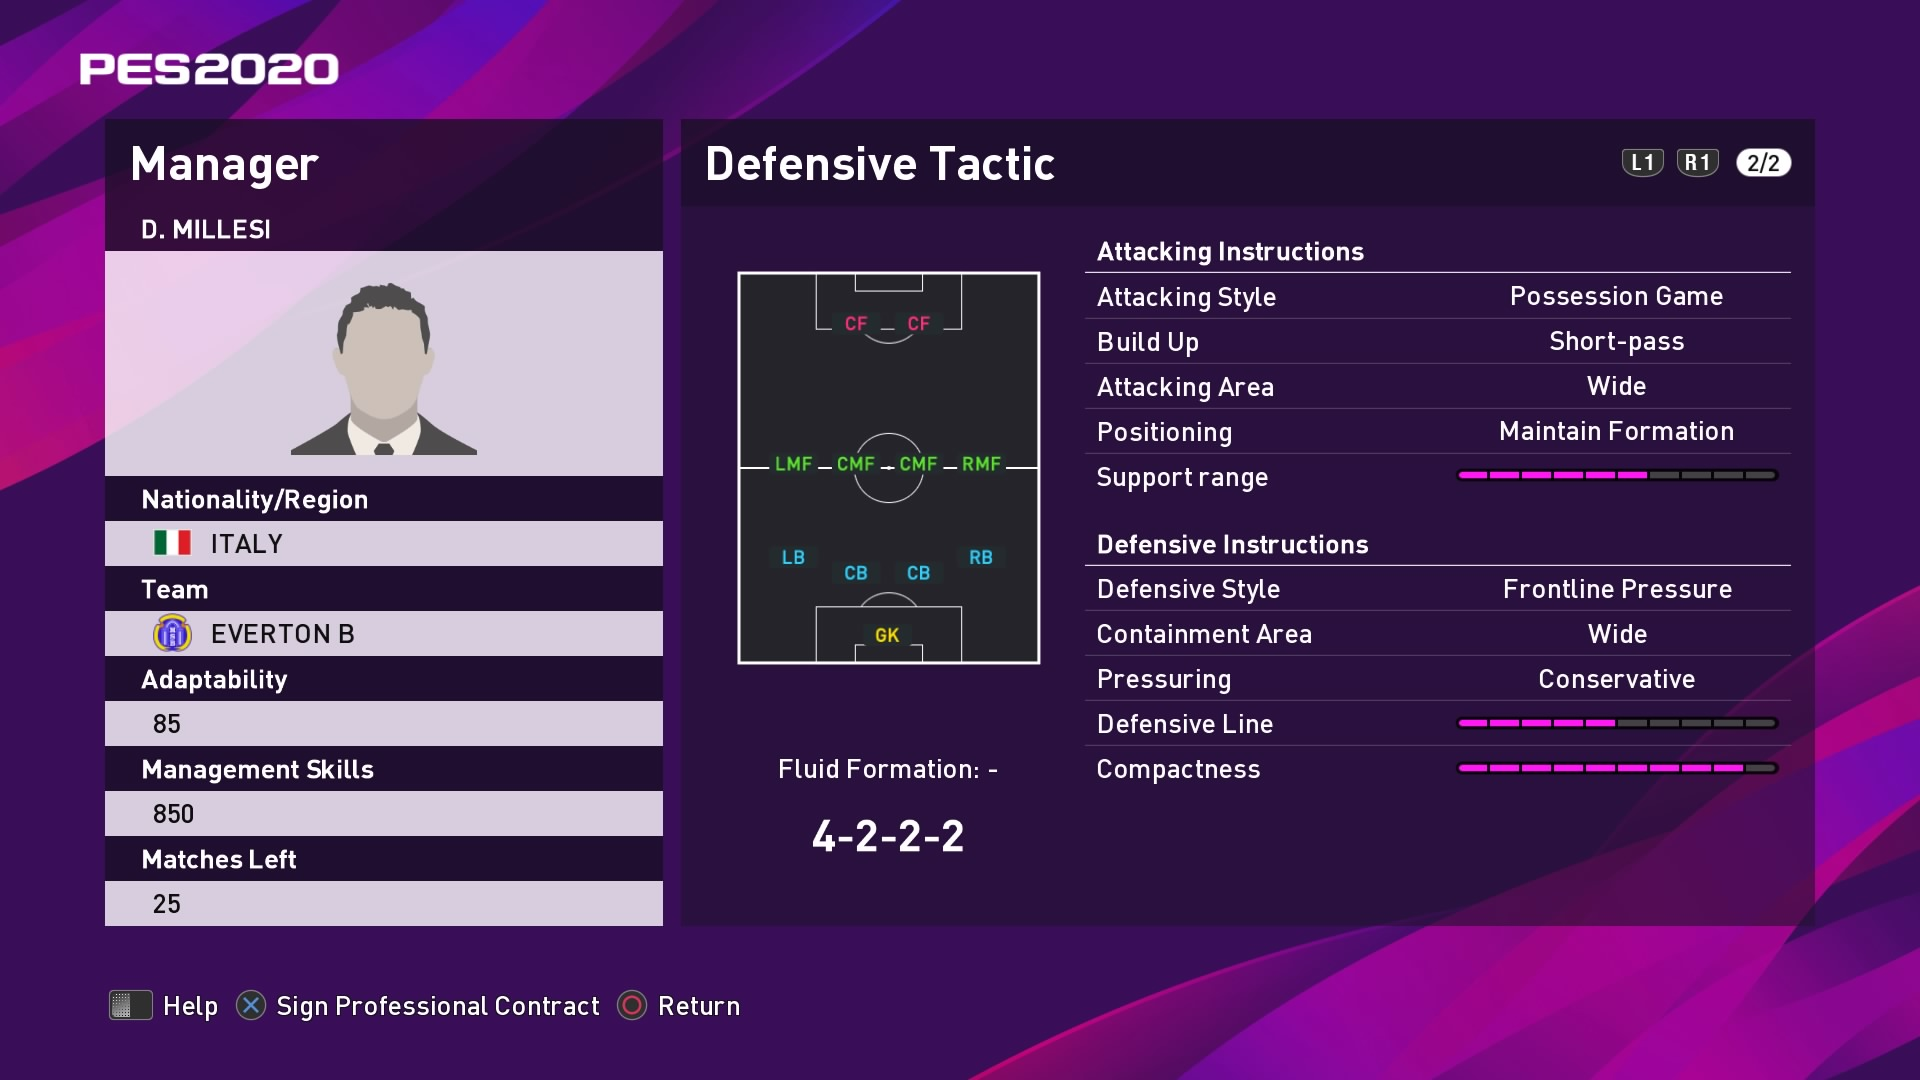 D. Millesi (3) (Carlo Ancelotti) Defensive Tactic in PES 2020 myClub